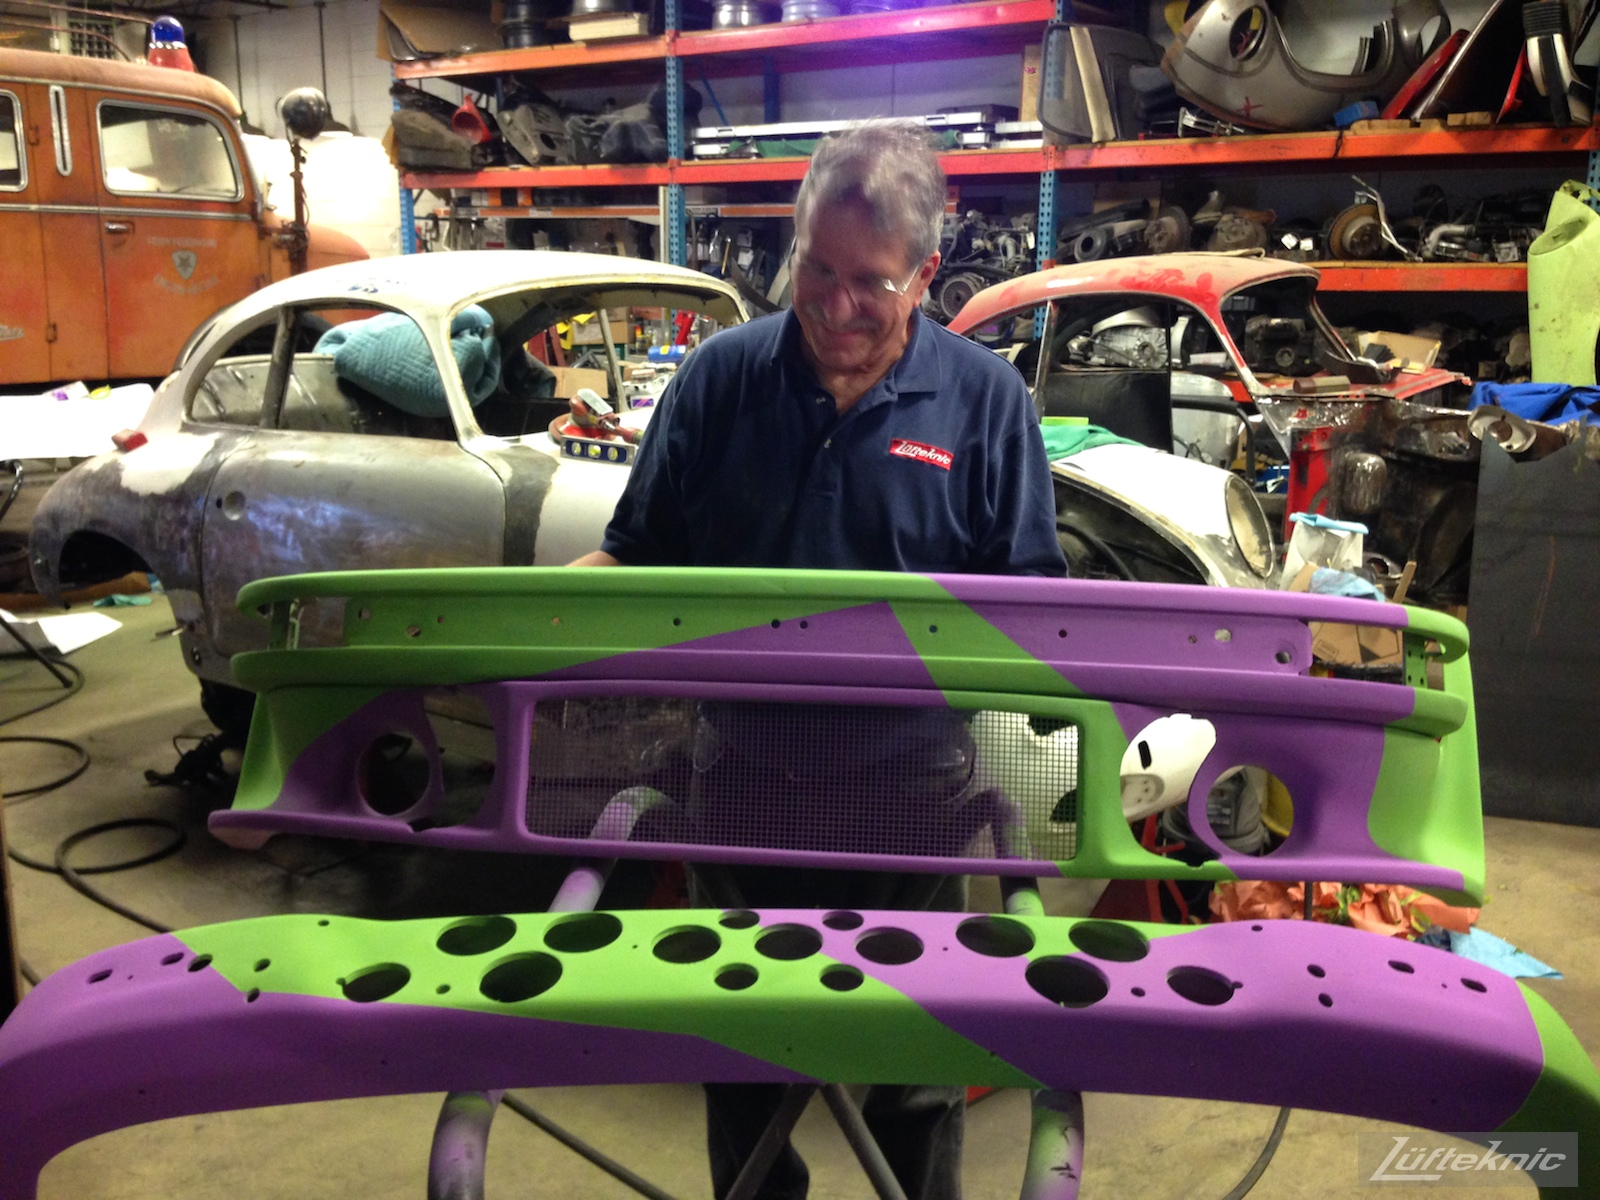 Lüfteknic #projectstuka Porsche 930 Turbo bumper painting done in purple and green.